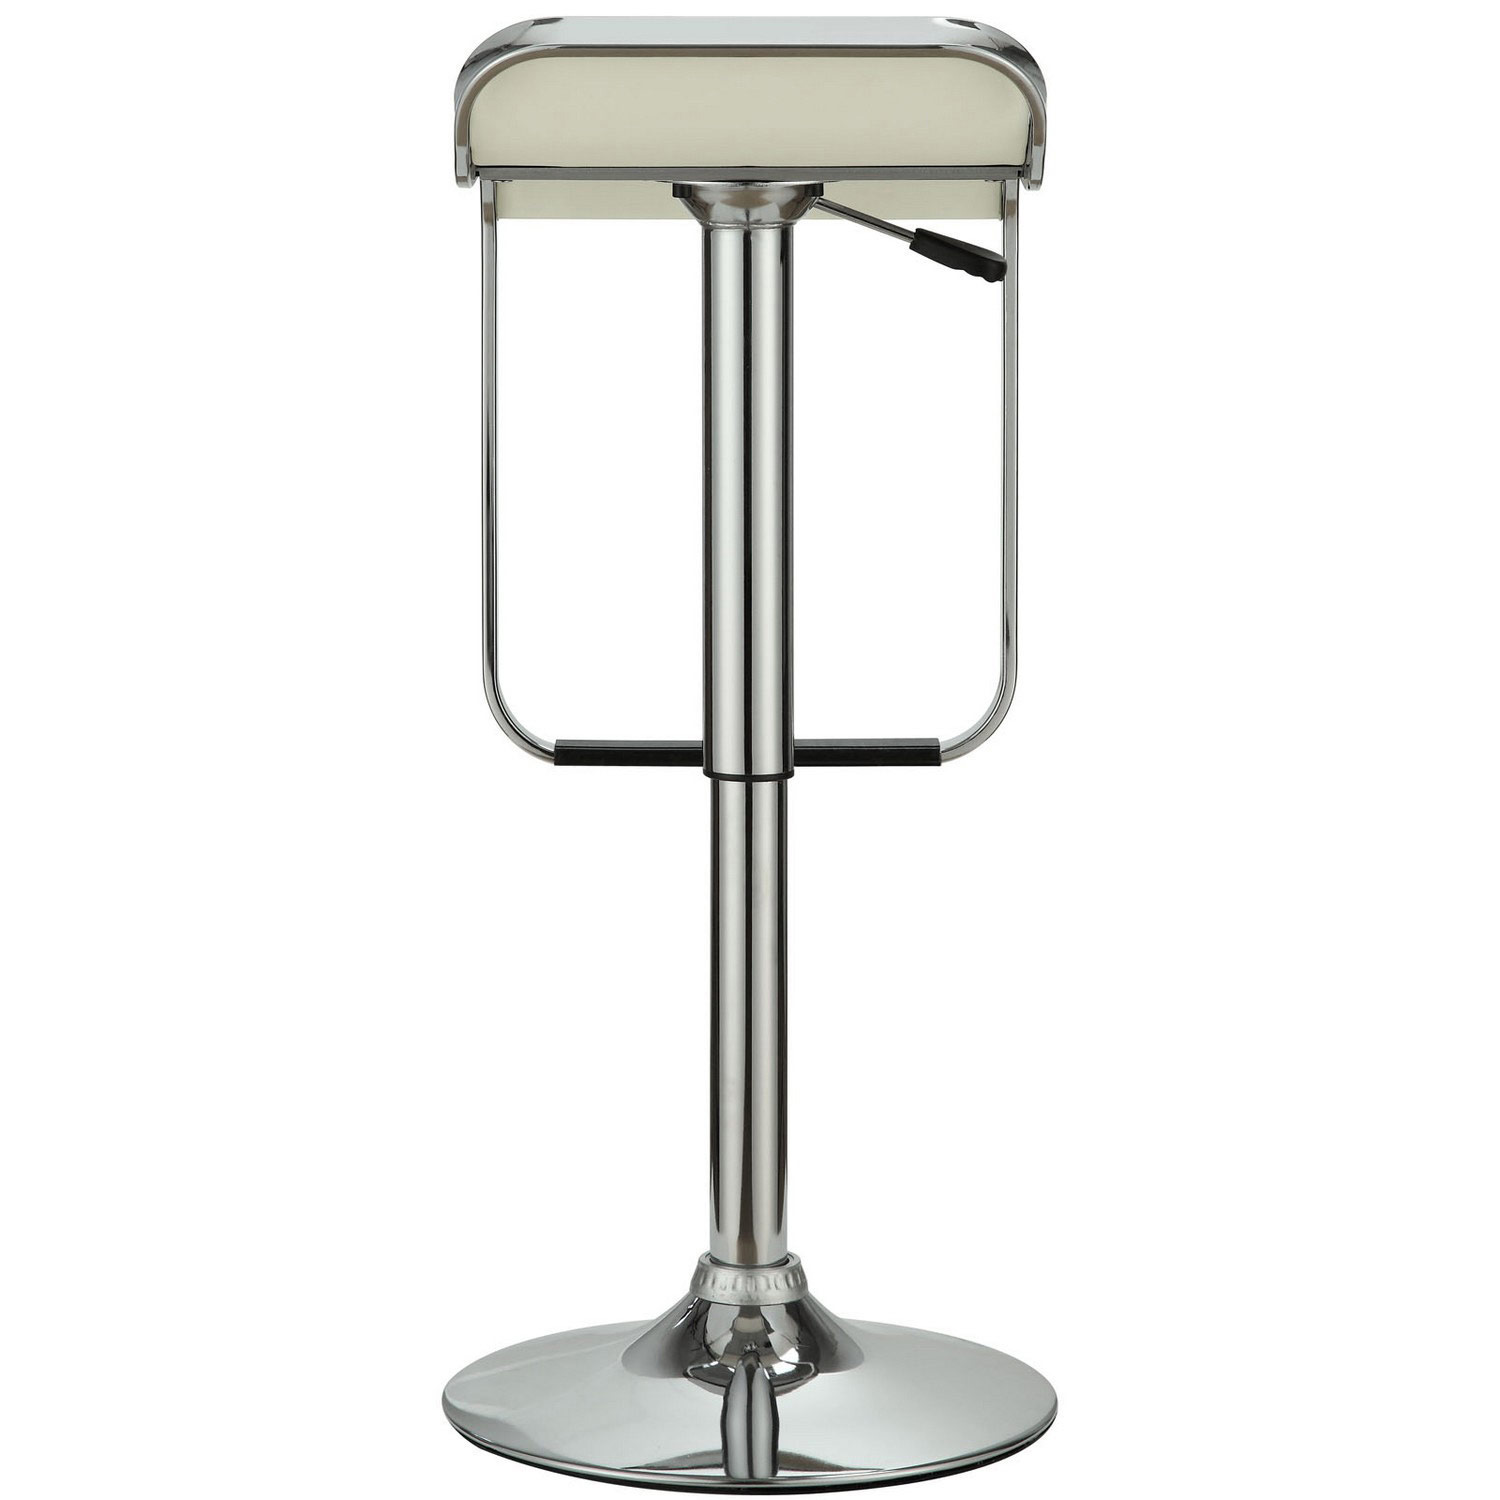 Modway LEM Vinyl Bar Stool - White